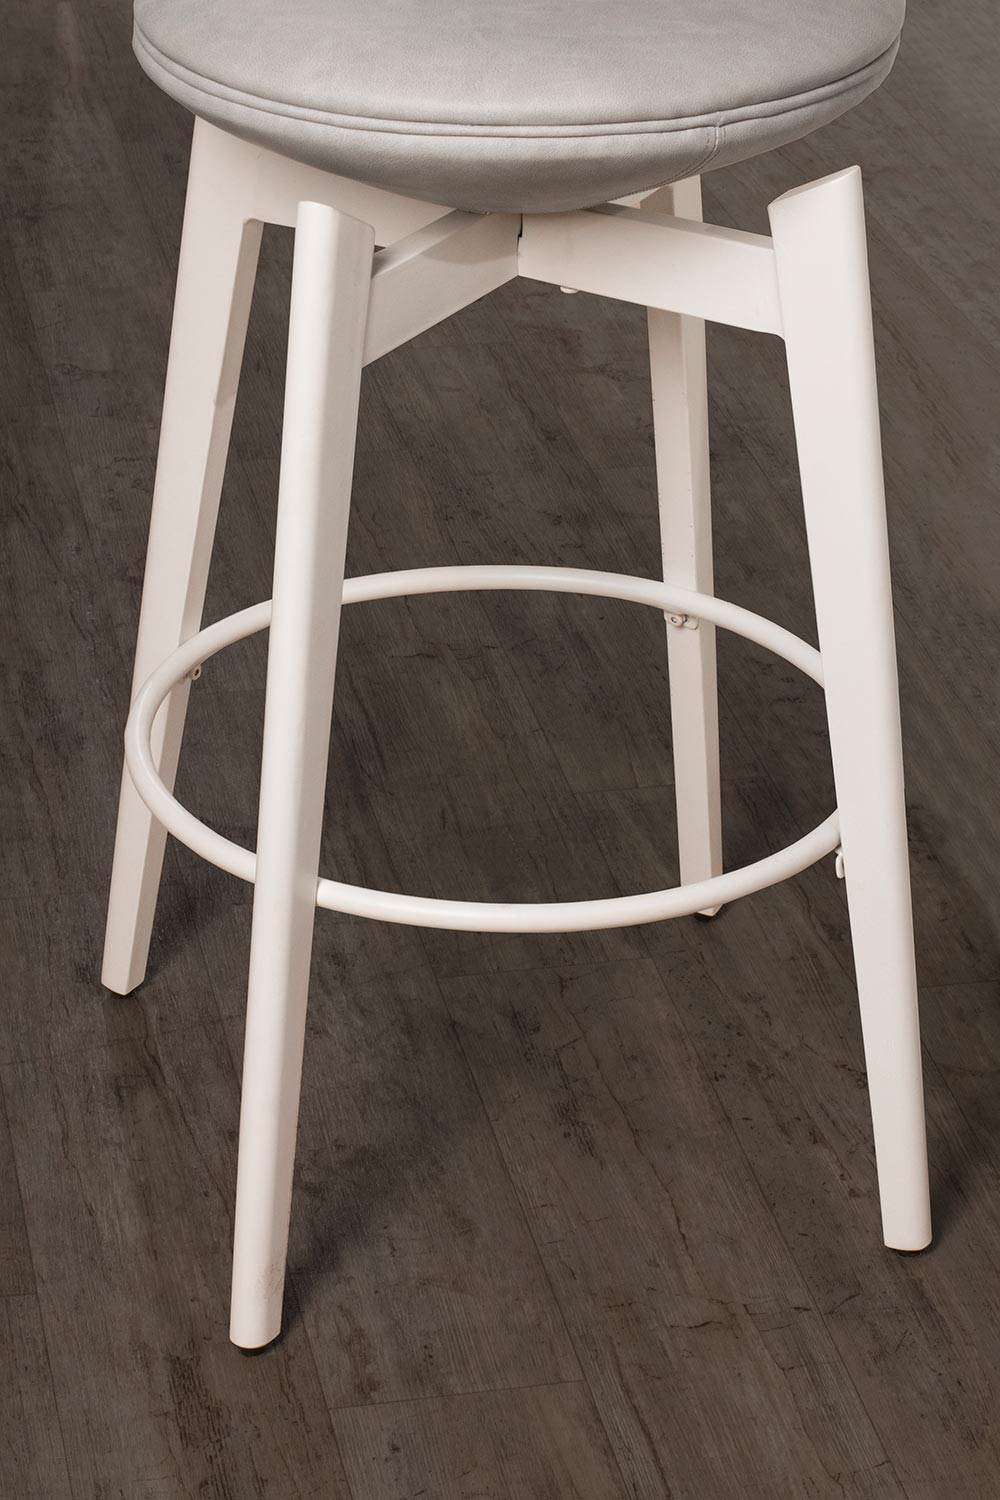 Hillsdale Genesis Backless Swivel Counter Stool - White